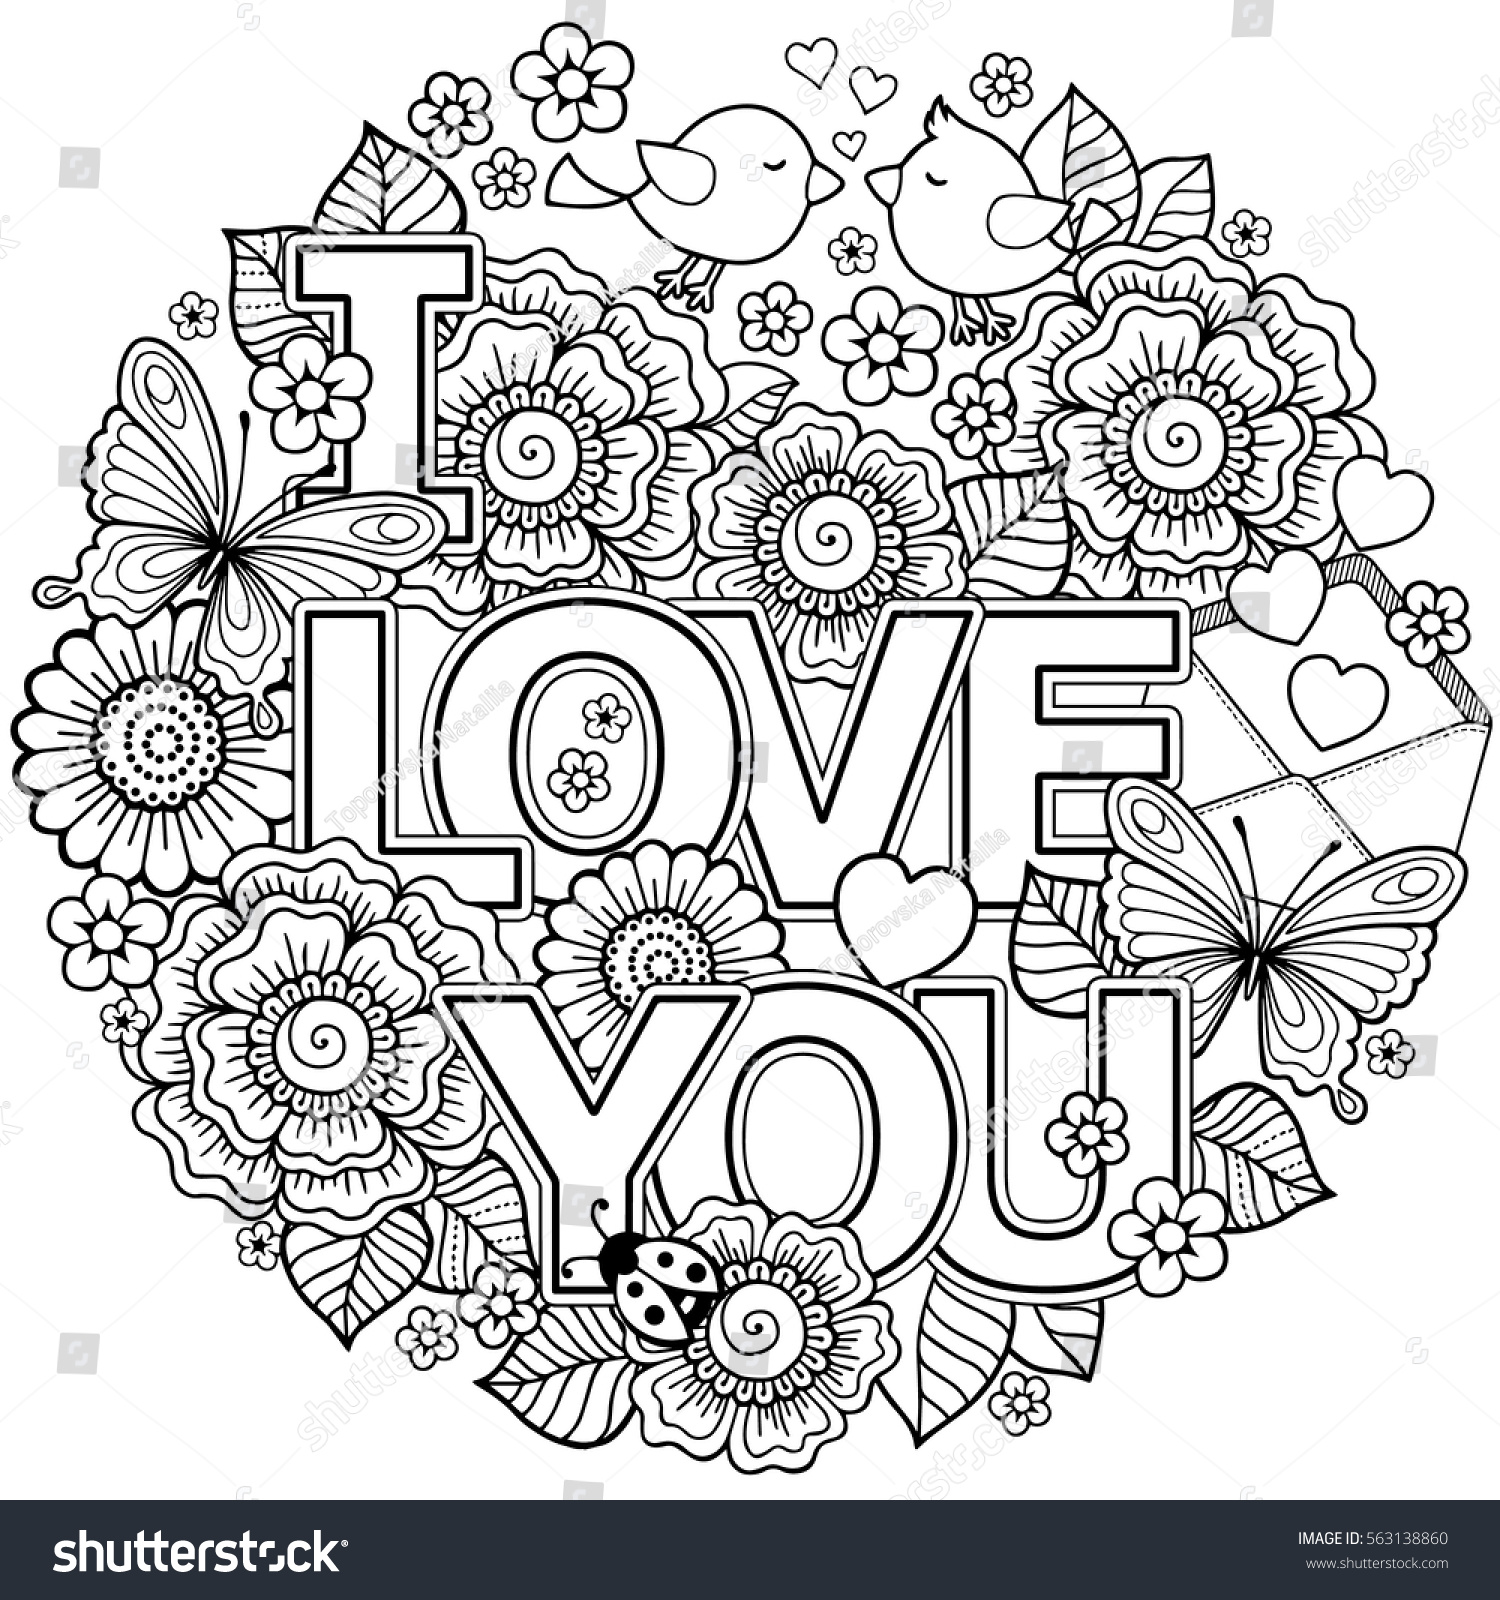 vector coloring page round shape stock vector 563138860